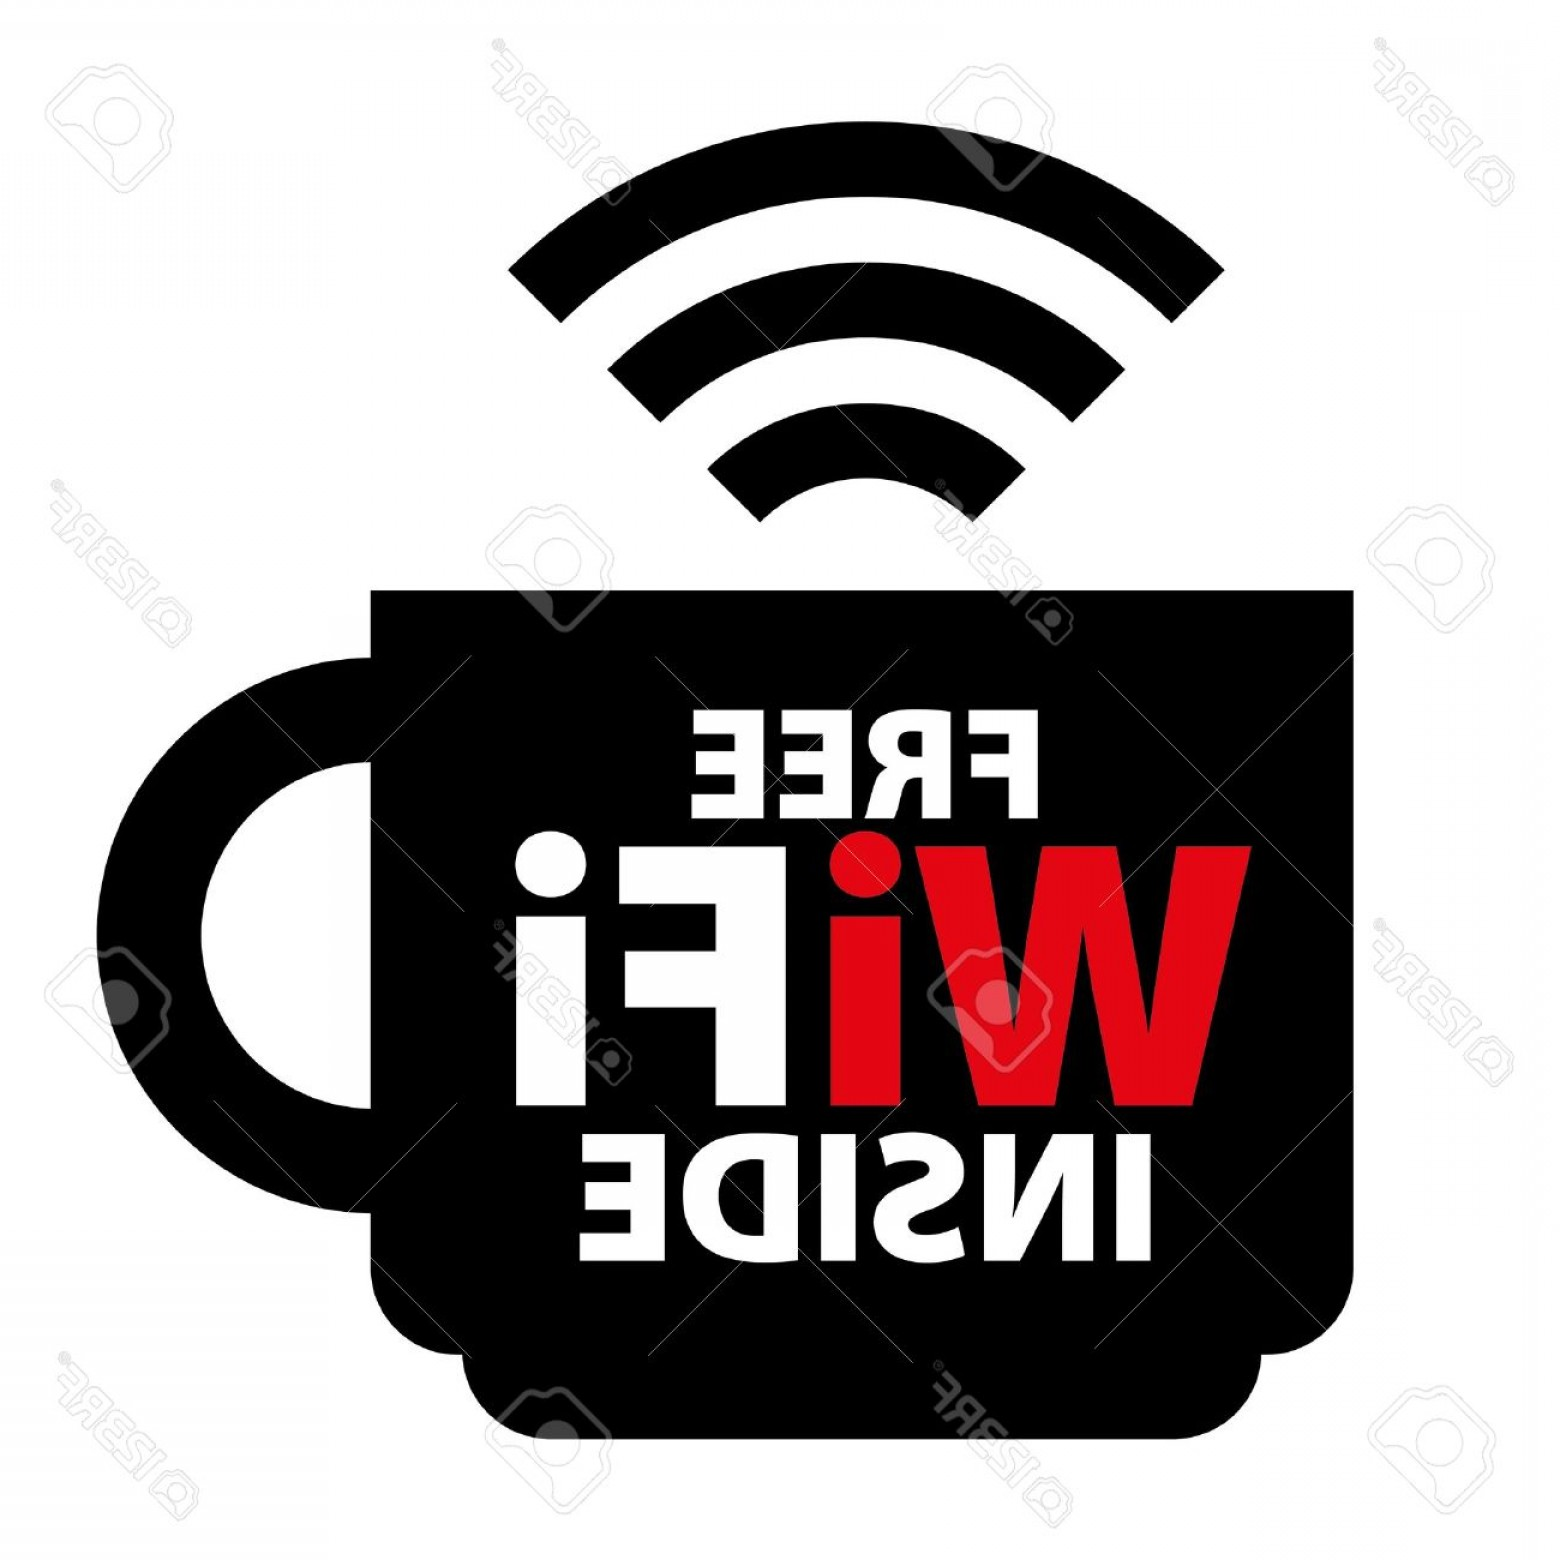 Wifi Symbol Clip Art Vector: Photofree Wifi Inside Sign With Black Cup